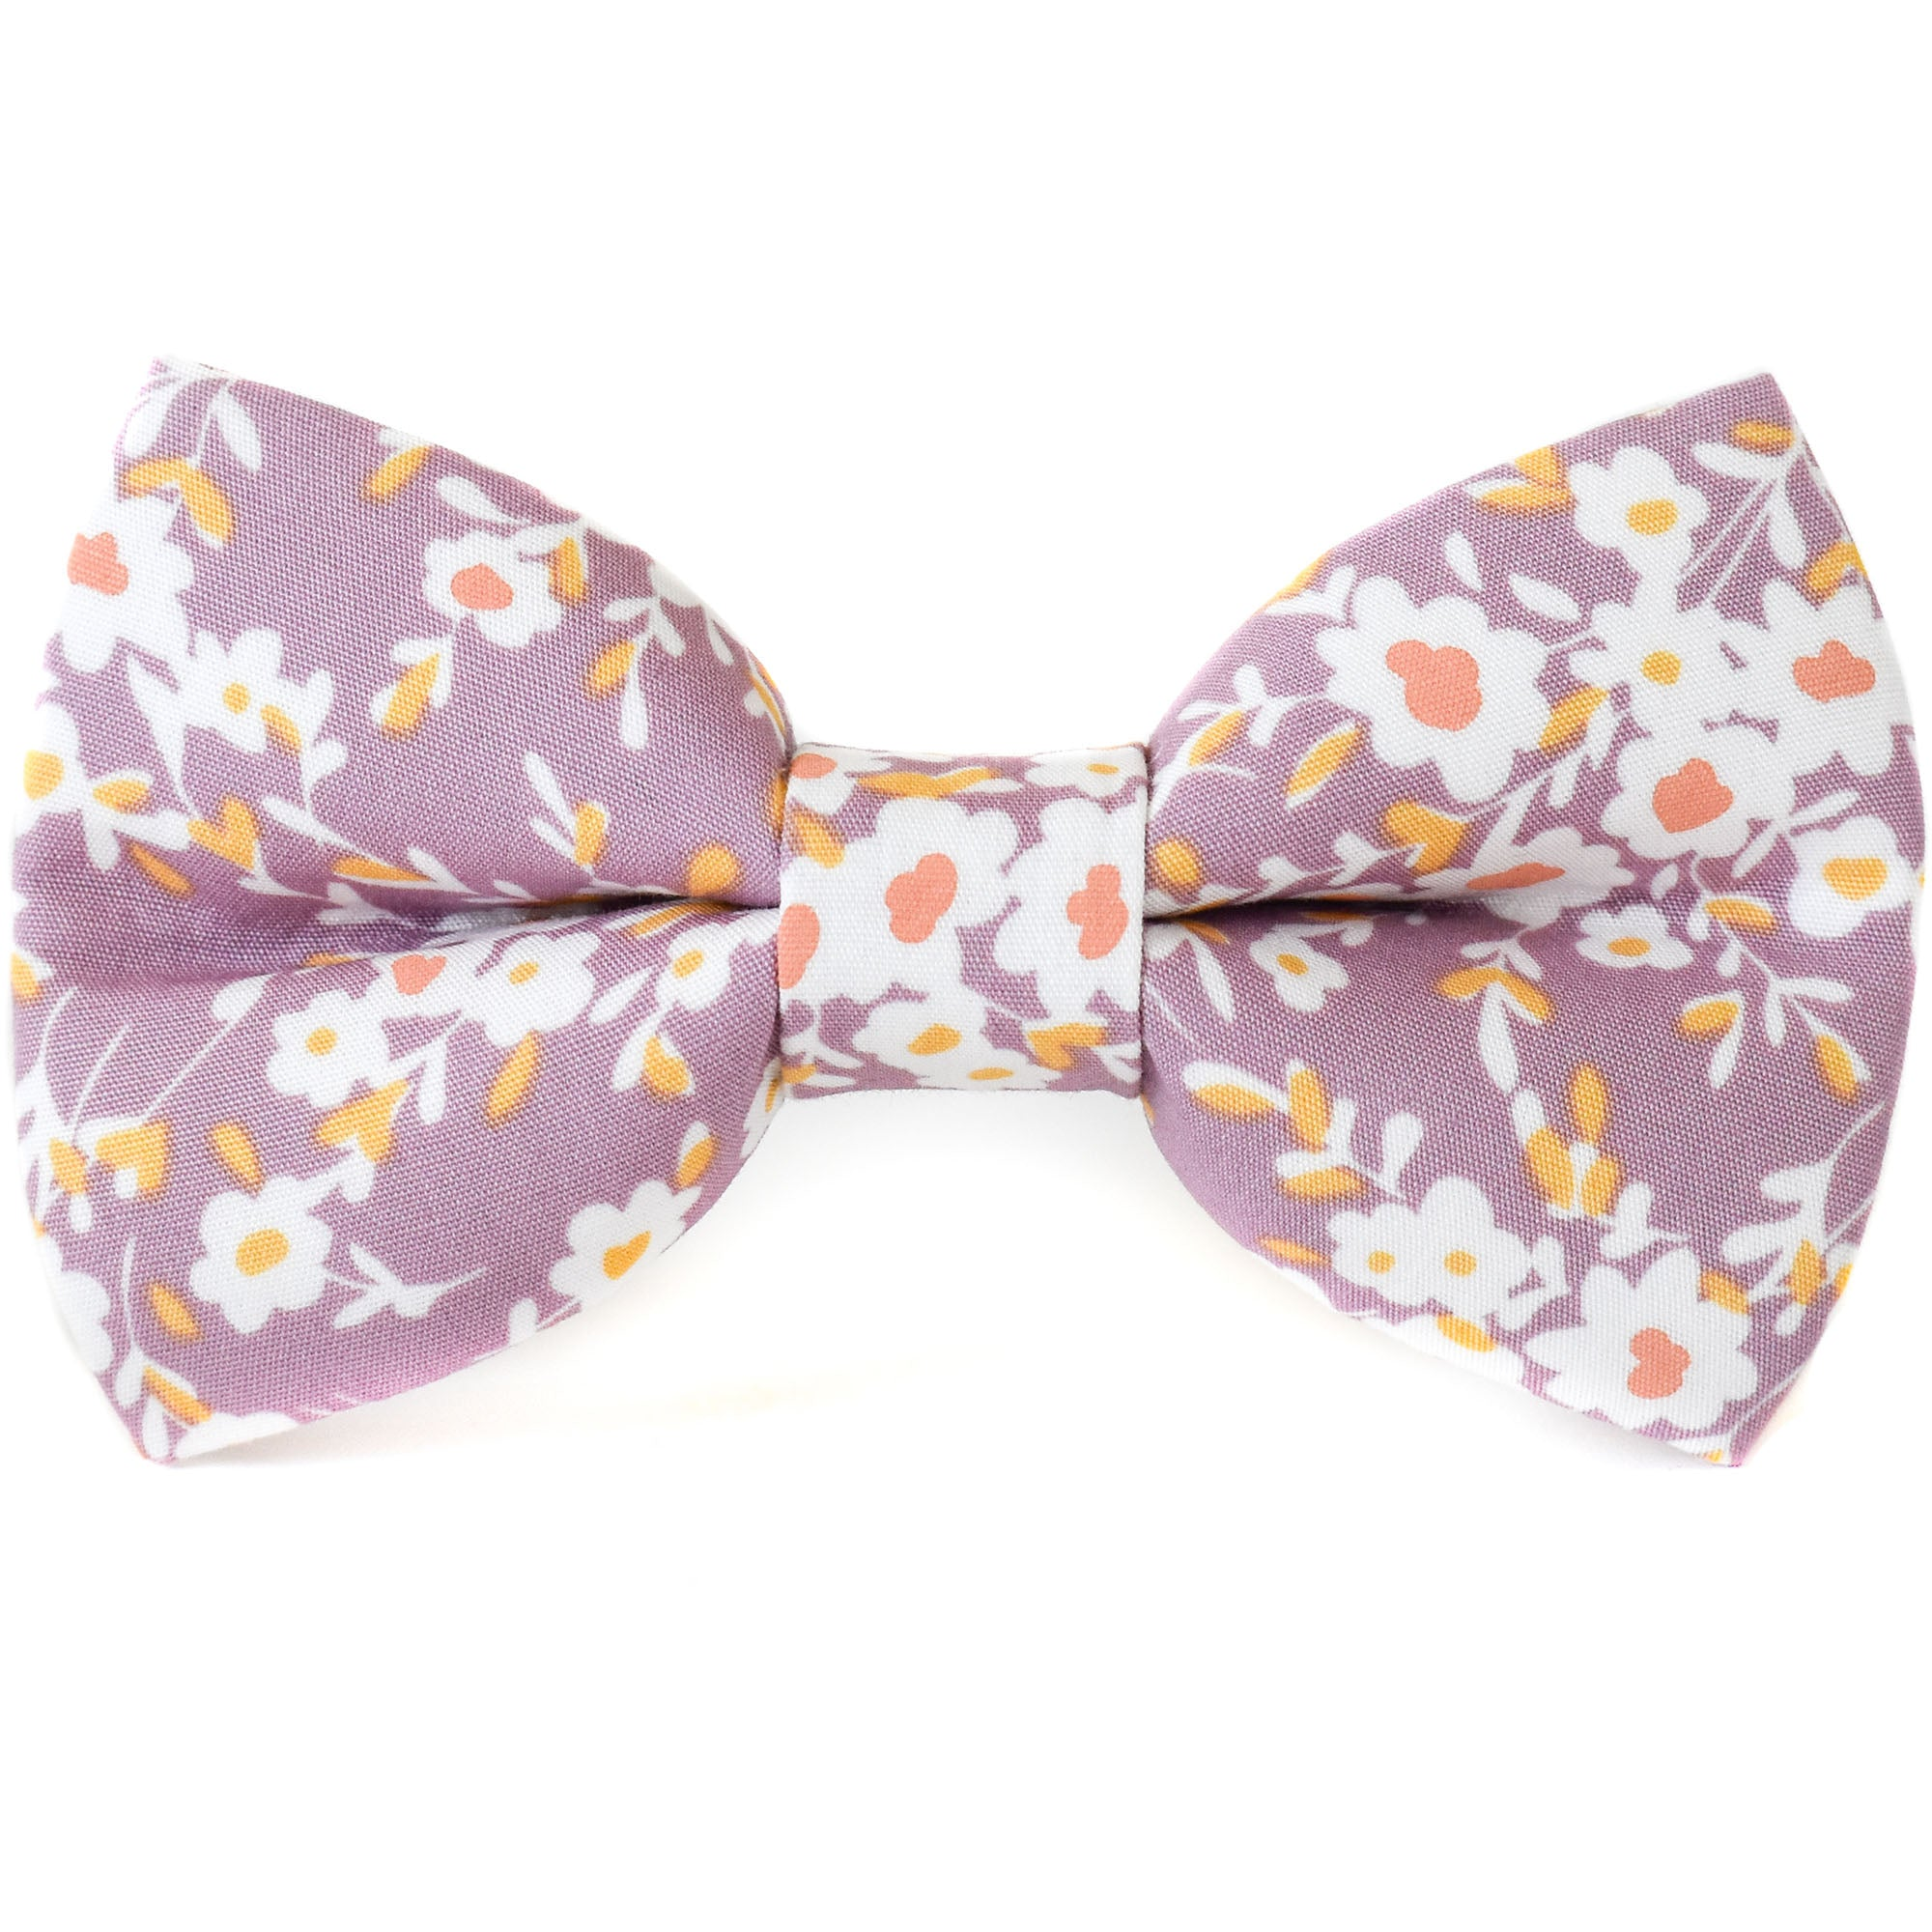 Lavender Love Floral Dog Bow Tie